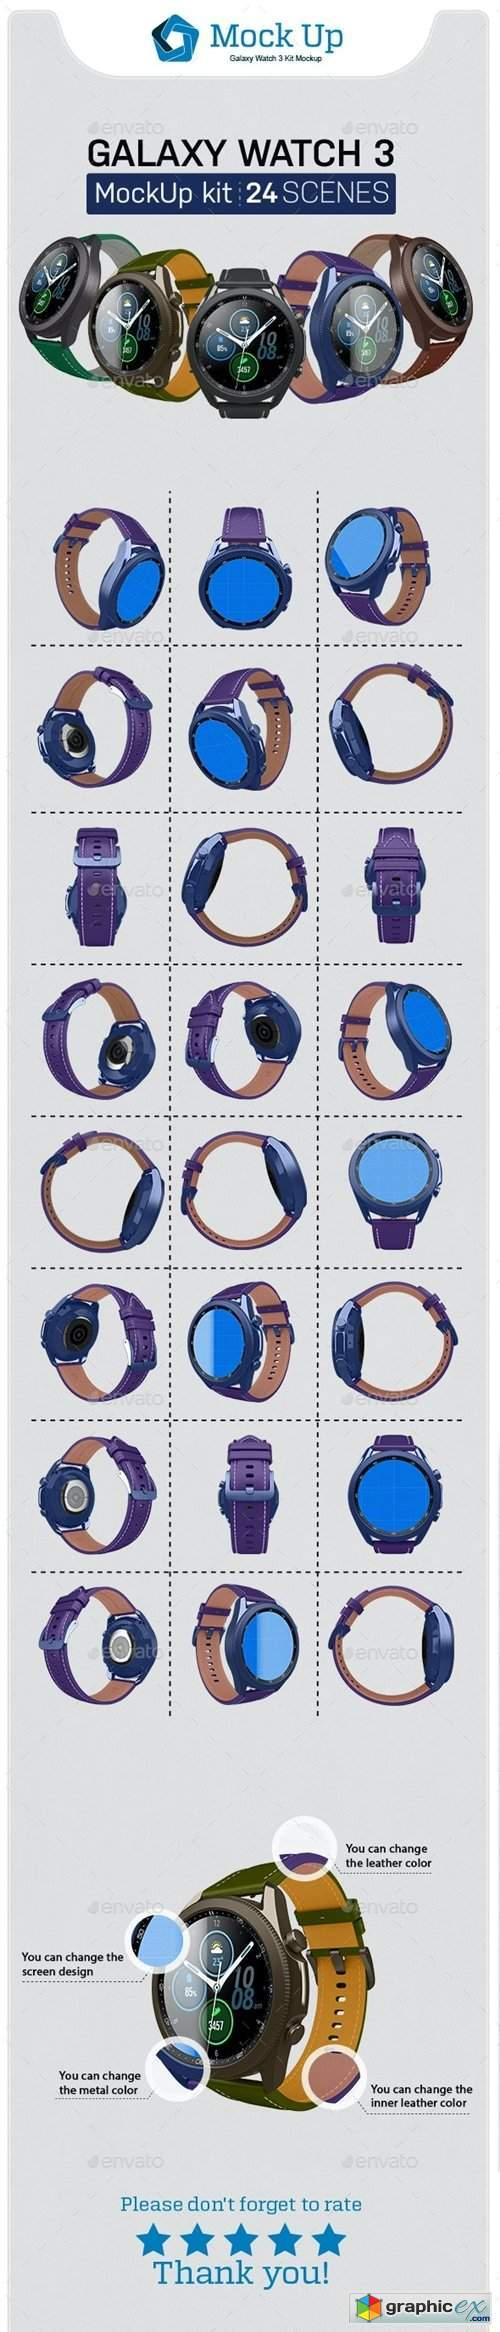 Smart Watch 3 Kit